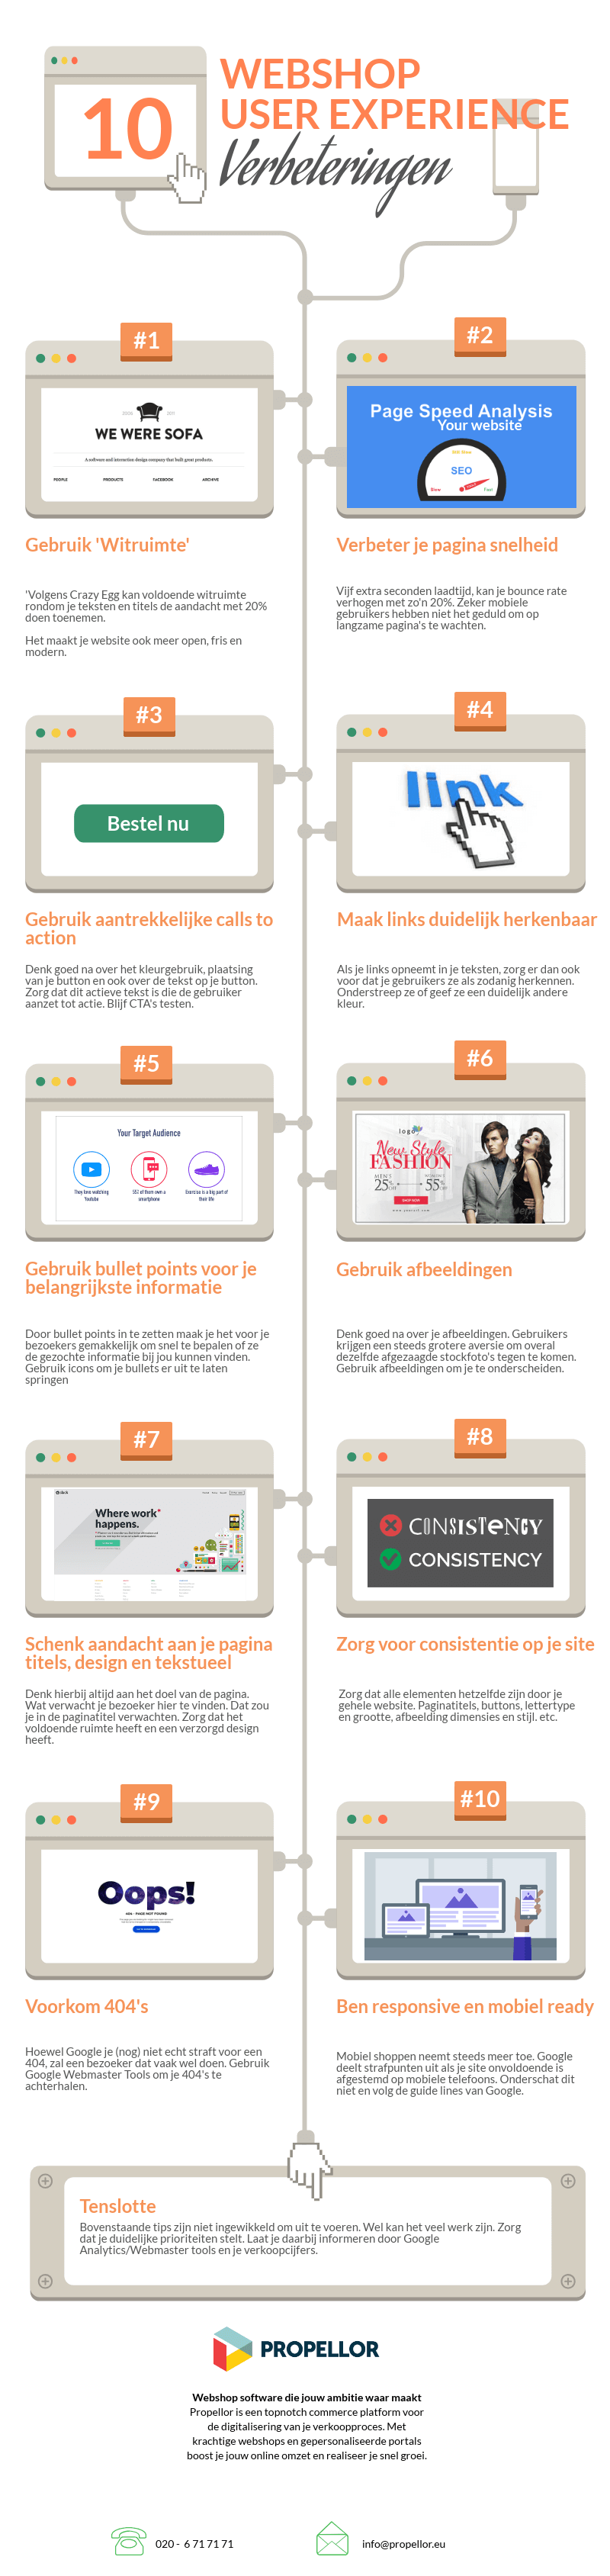 10-tips-webshop-ux-experience